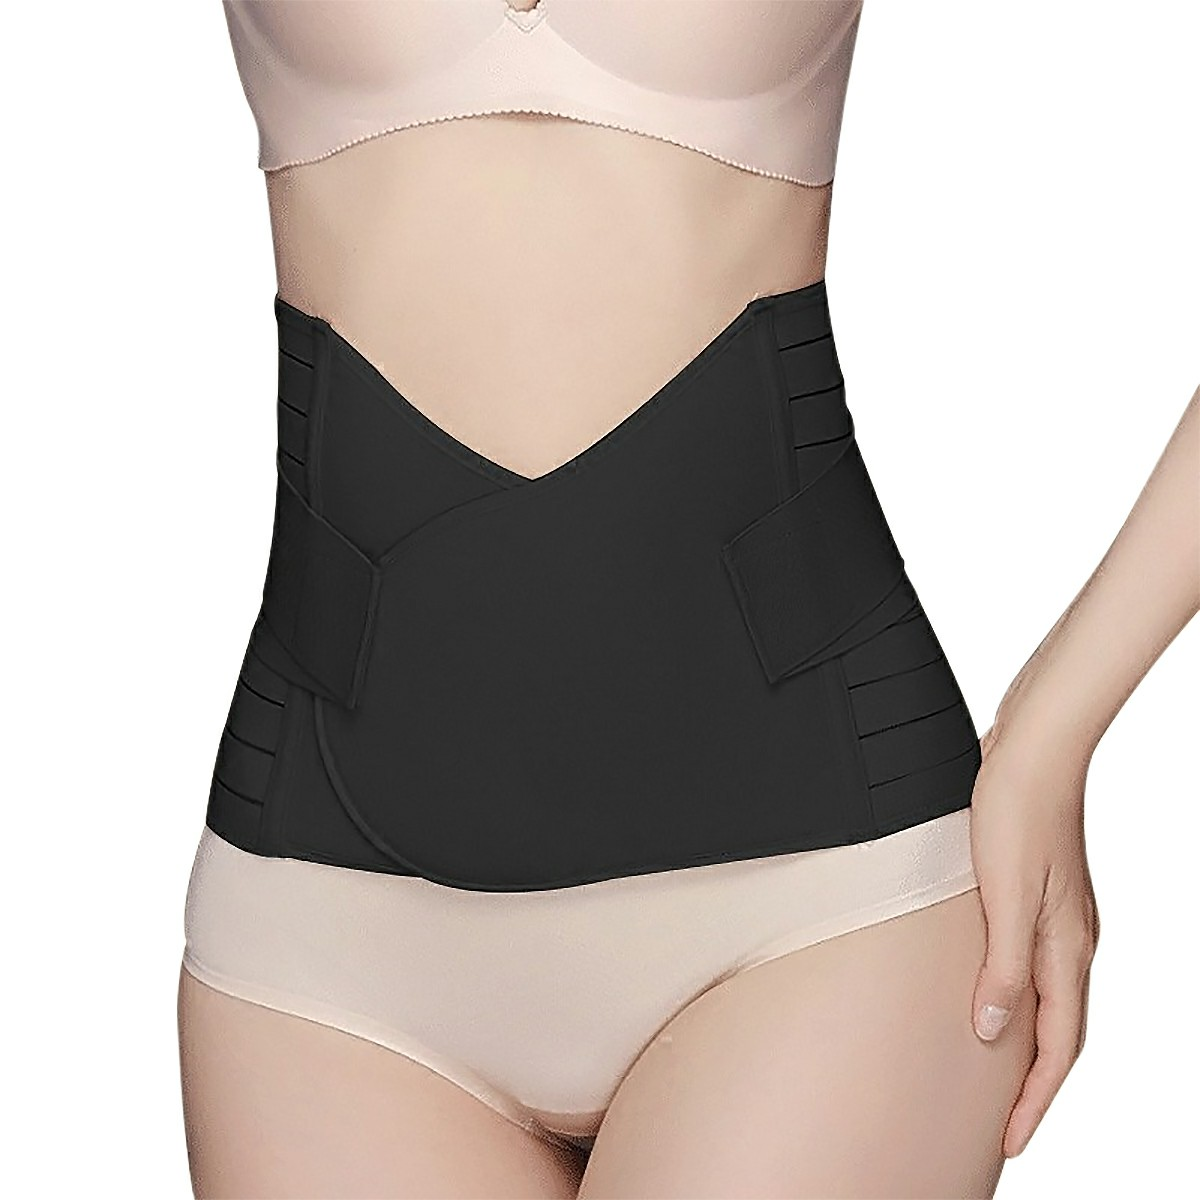 Postpartum Corset Recovery Tummy Belly Waist Support Belt Shaper - Black